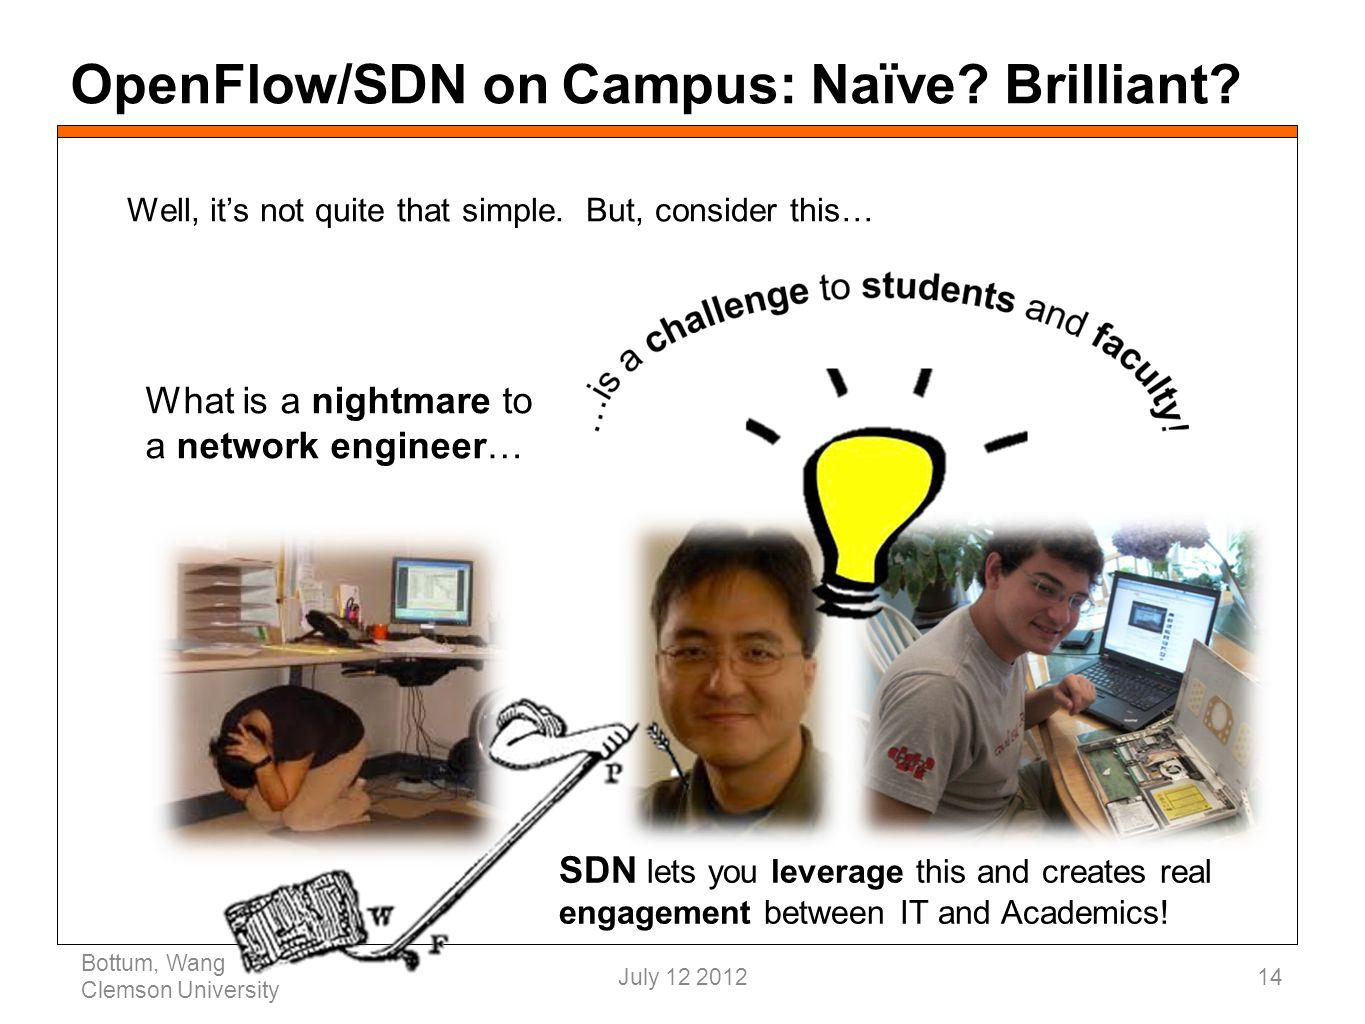 OpenFlow/SDN on Campus: Naïve. Brilliant.